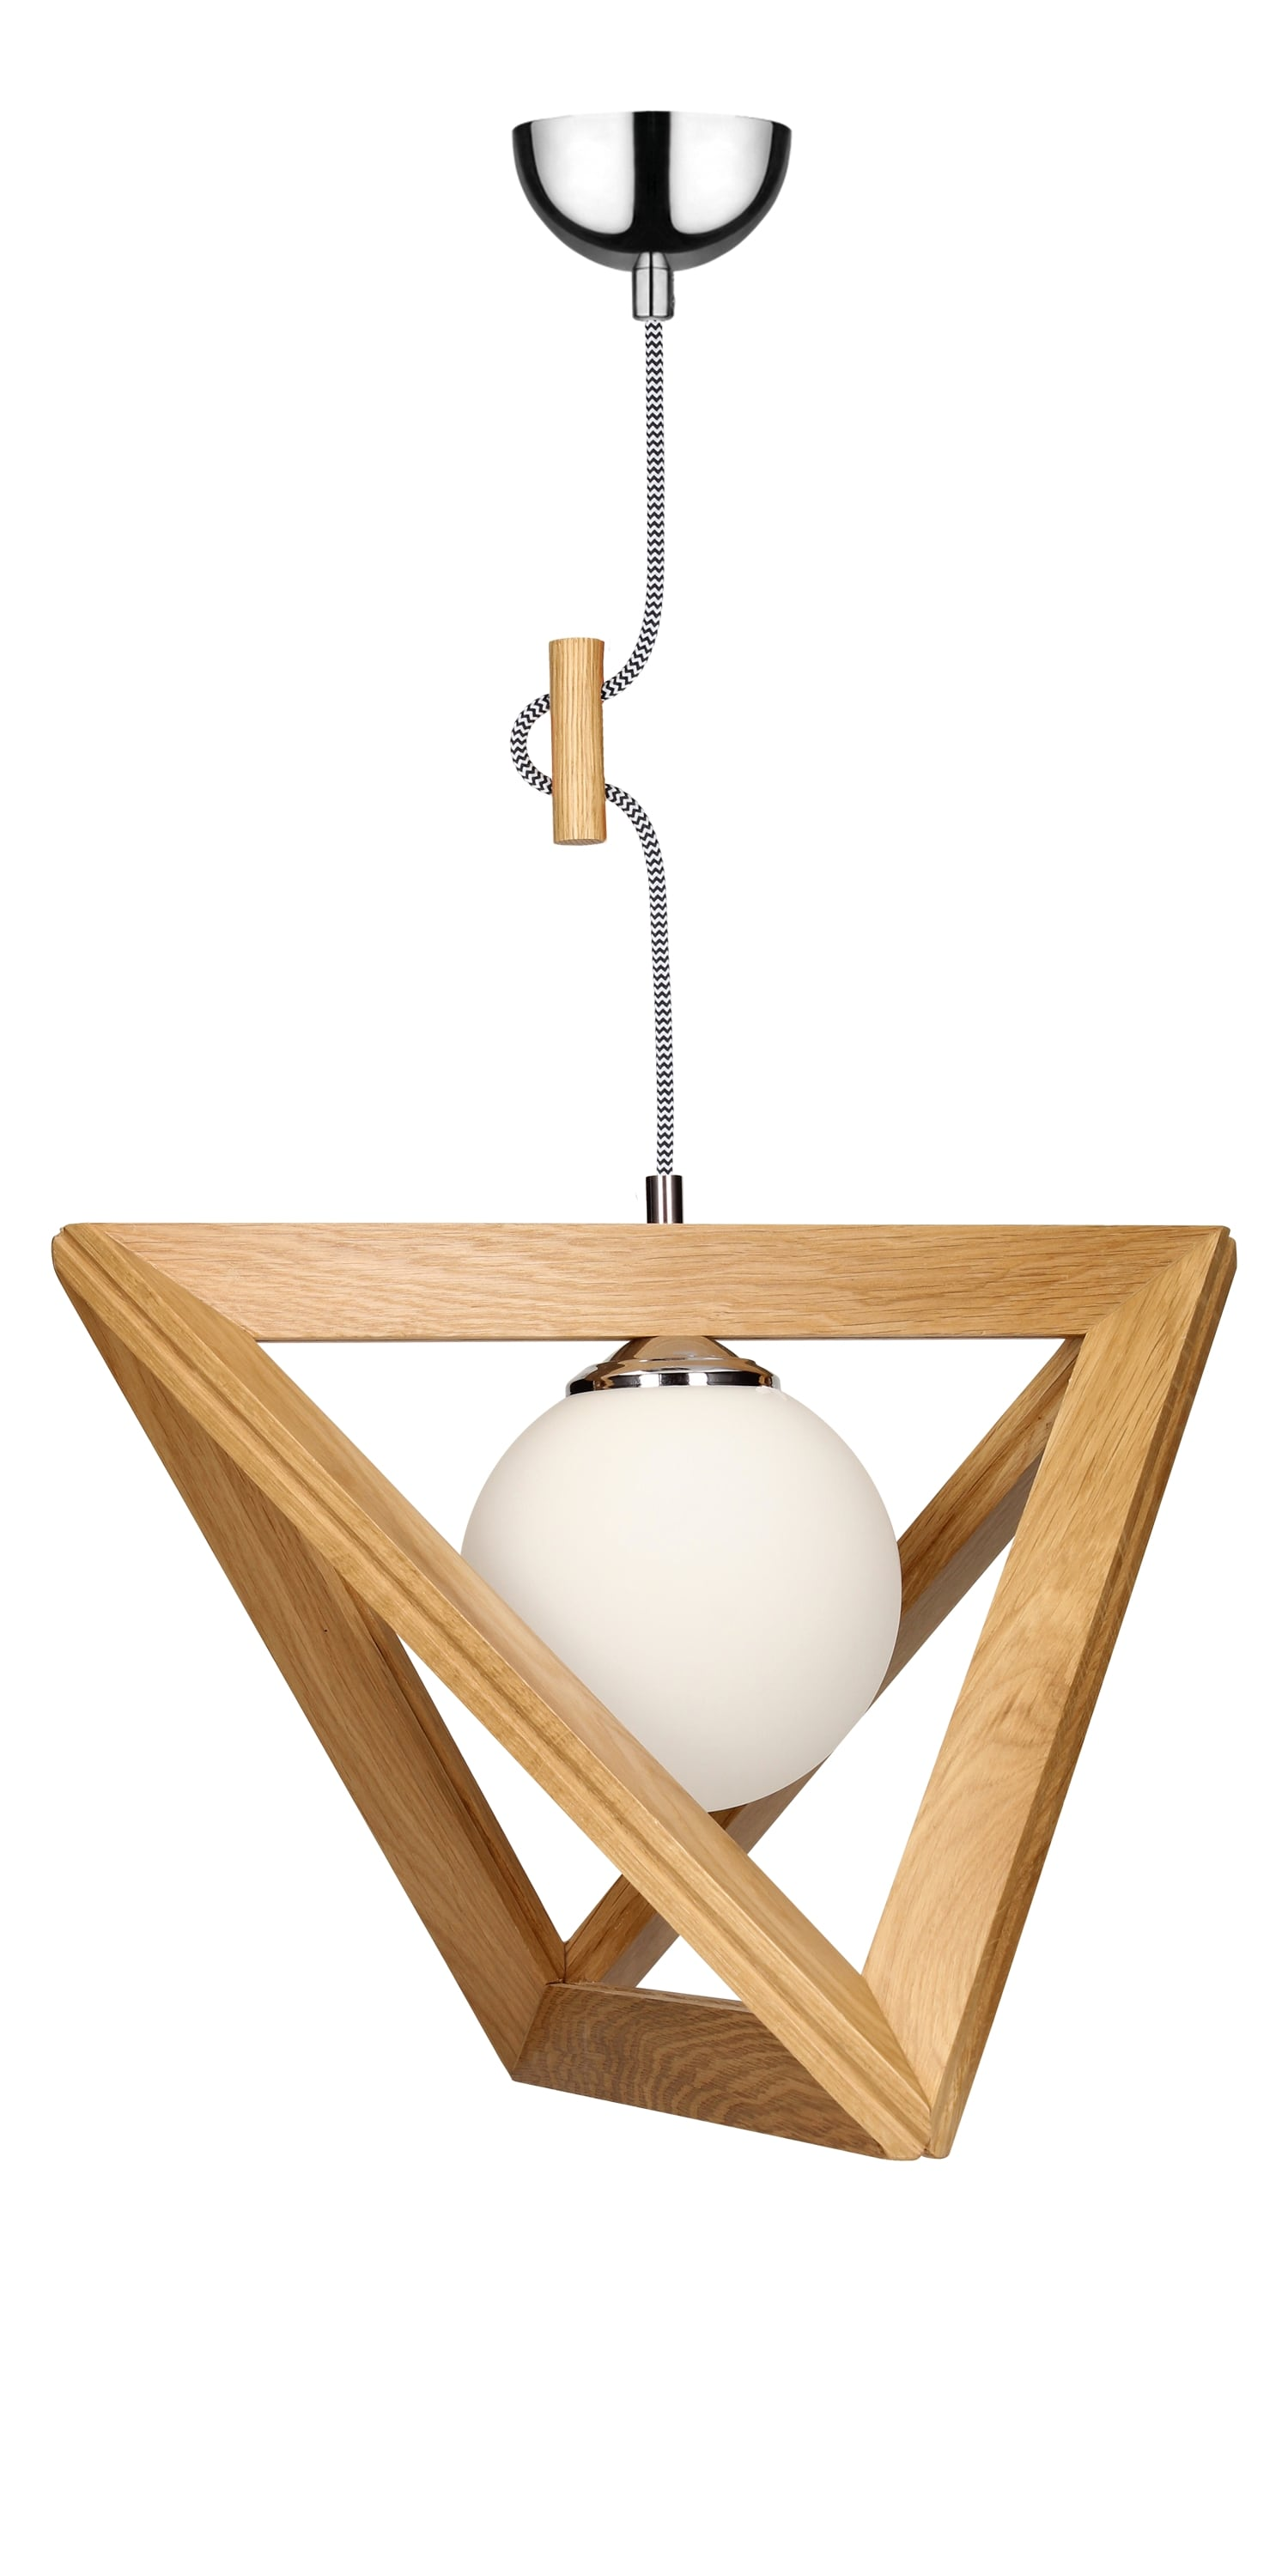 Hanging lamp Trigonon oak / chrome / black and white E27 60W